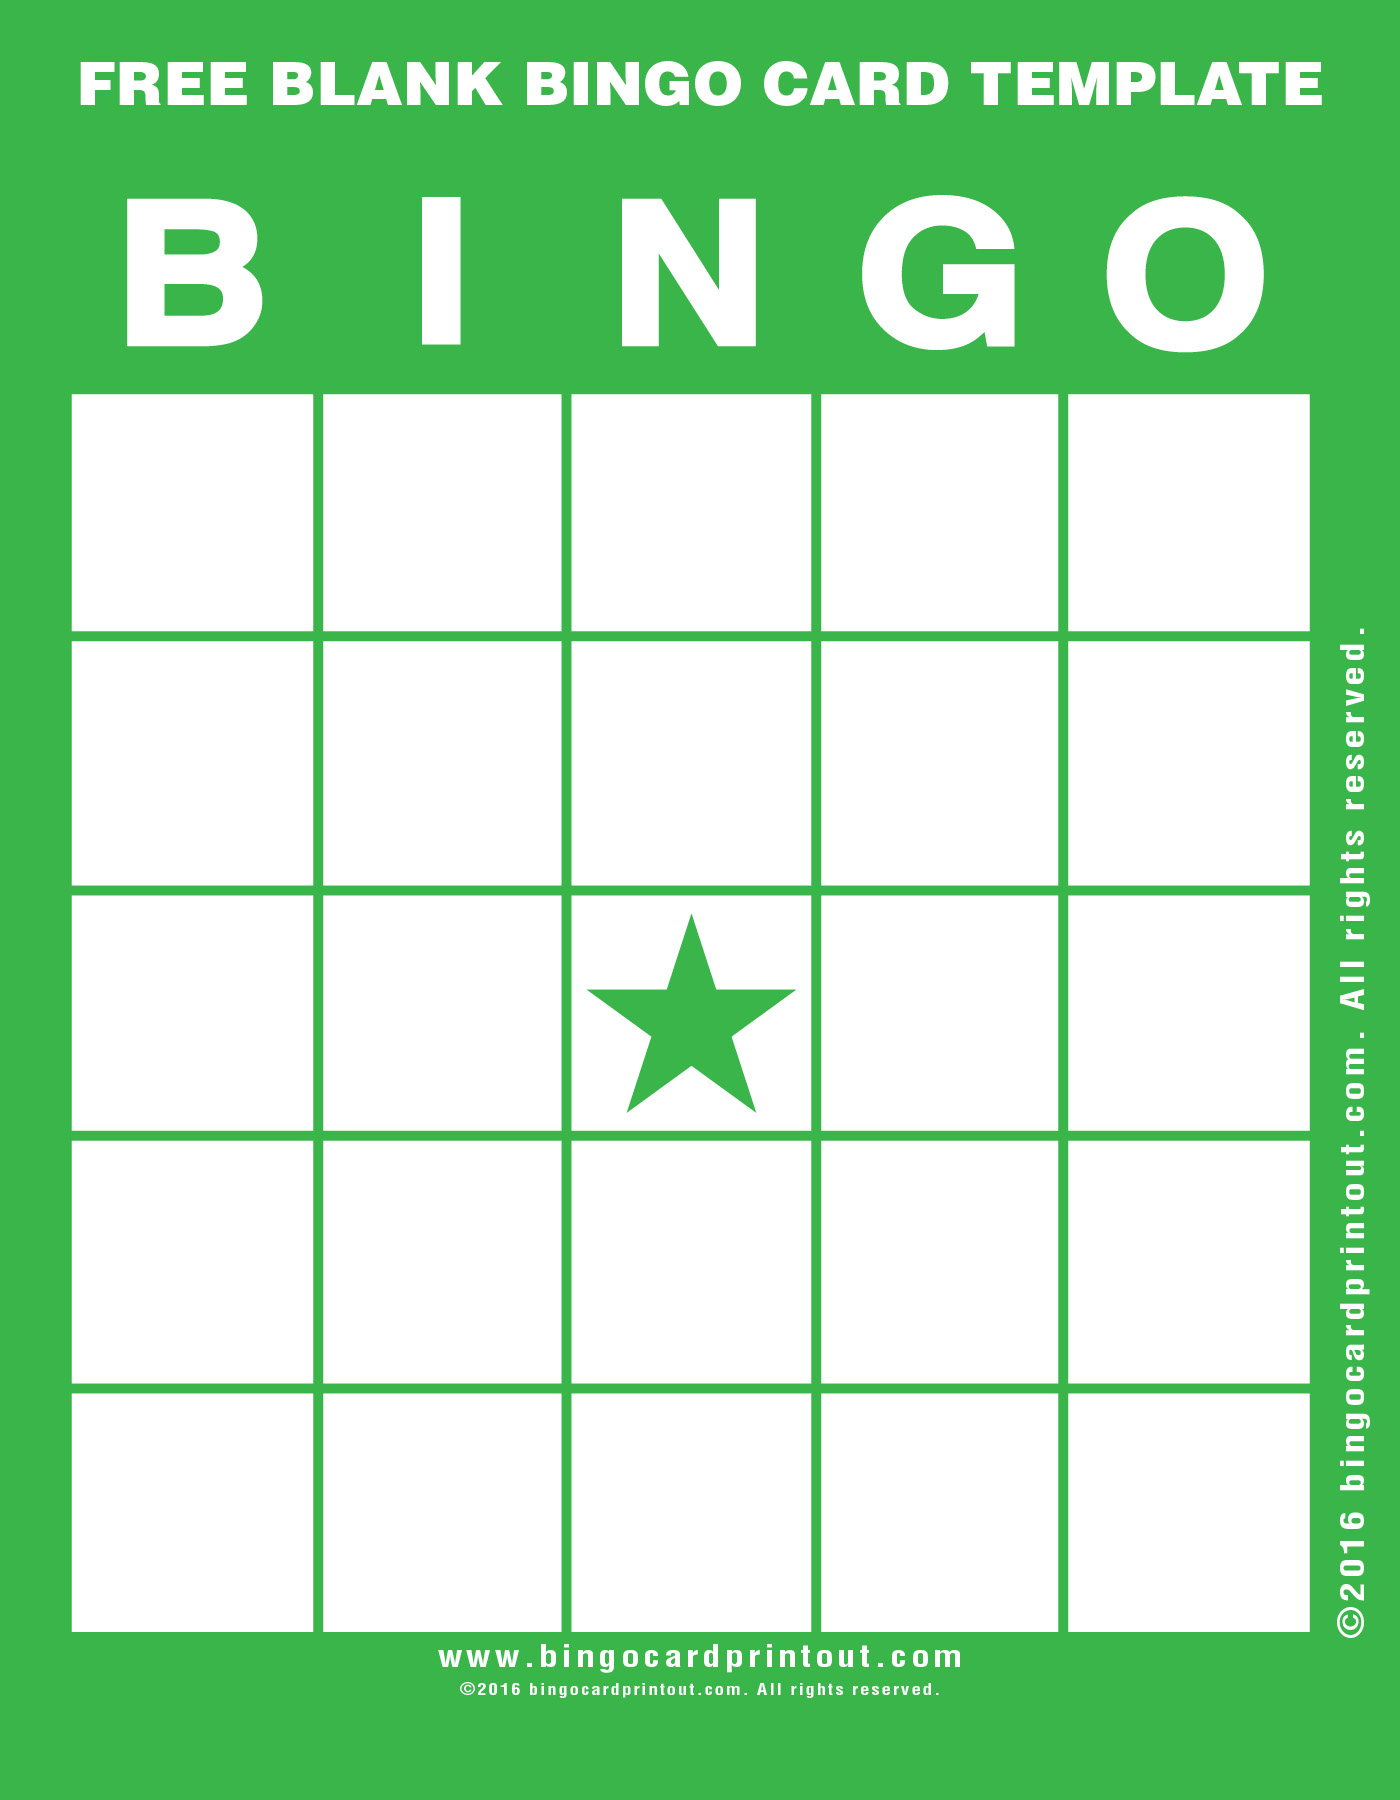 Free blank bingo card template for Free complimentary cards templates